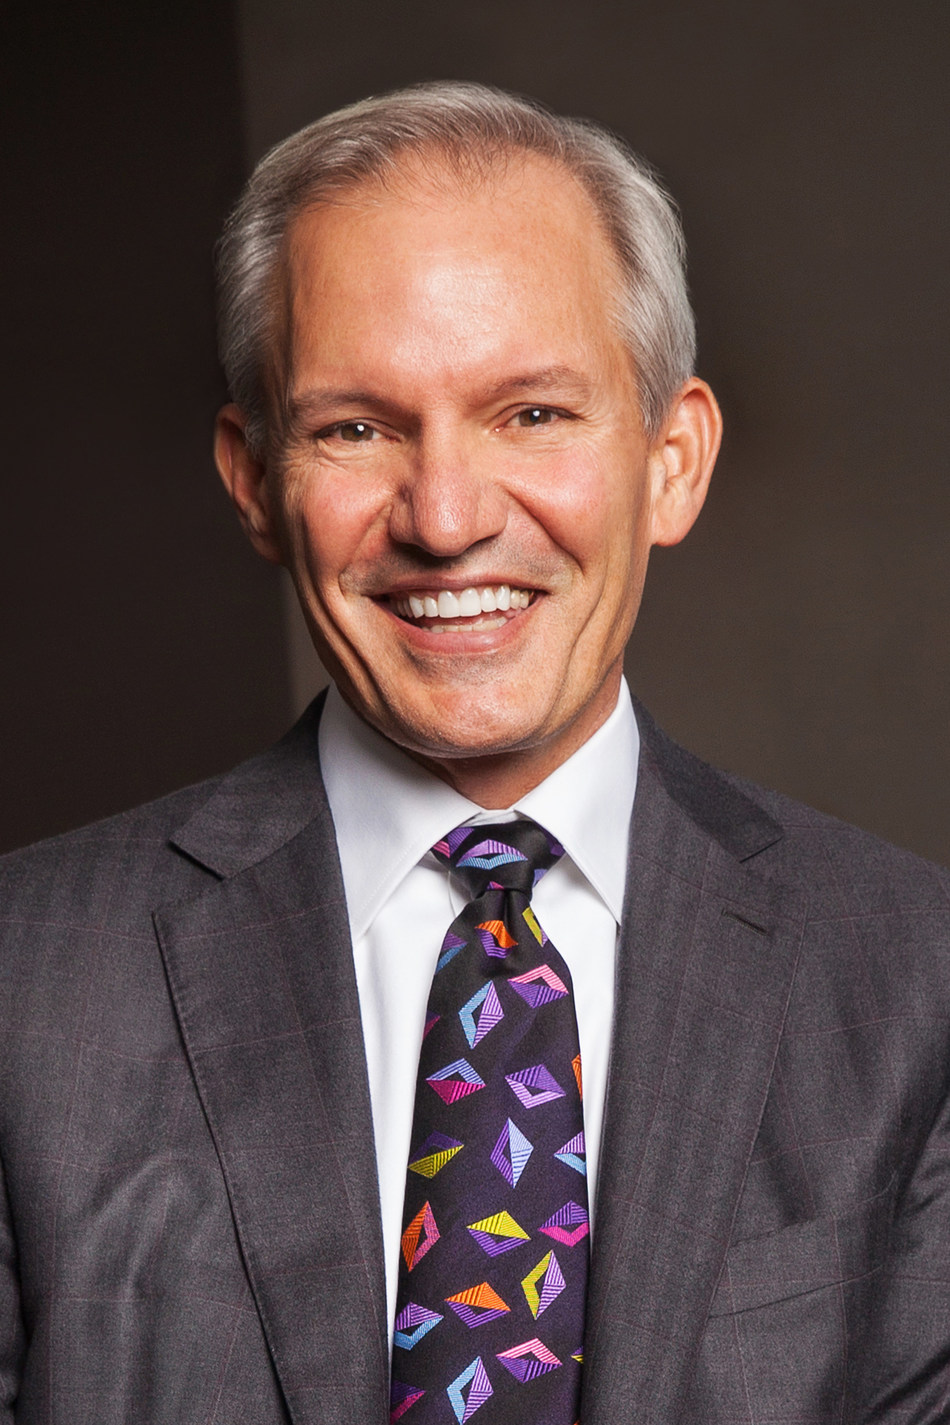 Greg Graves served as chairman and CEO of Burns & McDonnell for 13 years. The 36-year veteran of the firm will retire at the end of 2016.